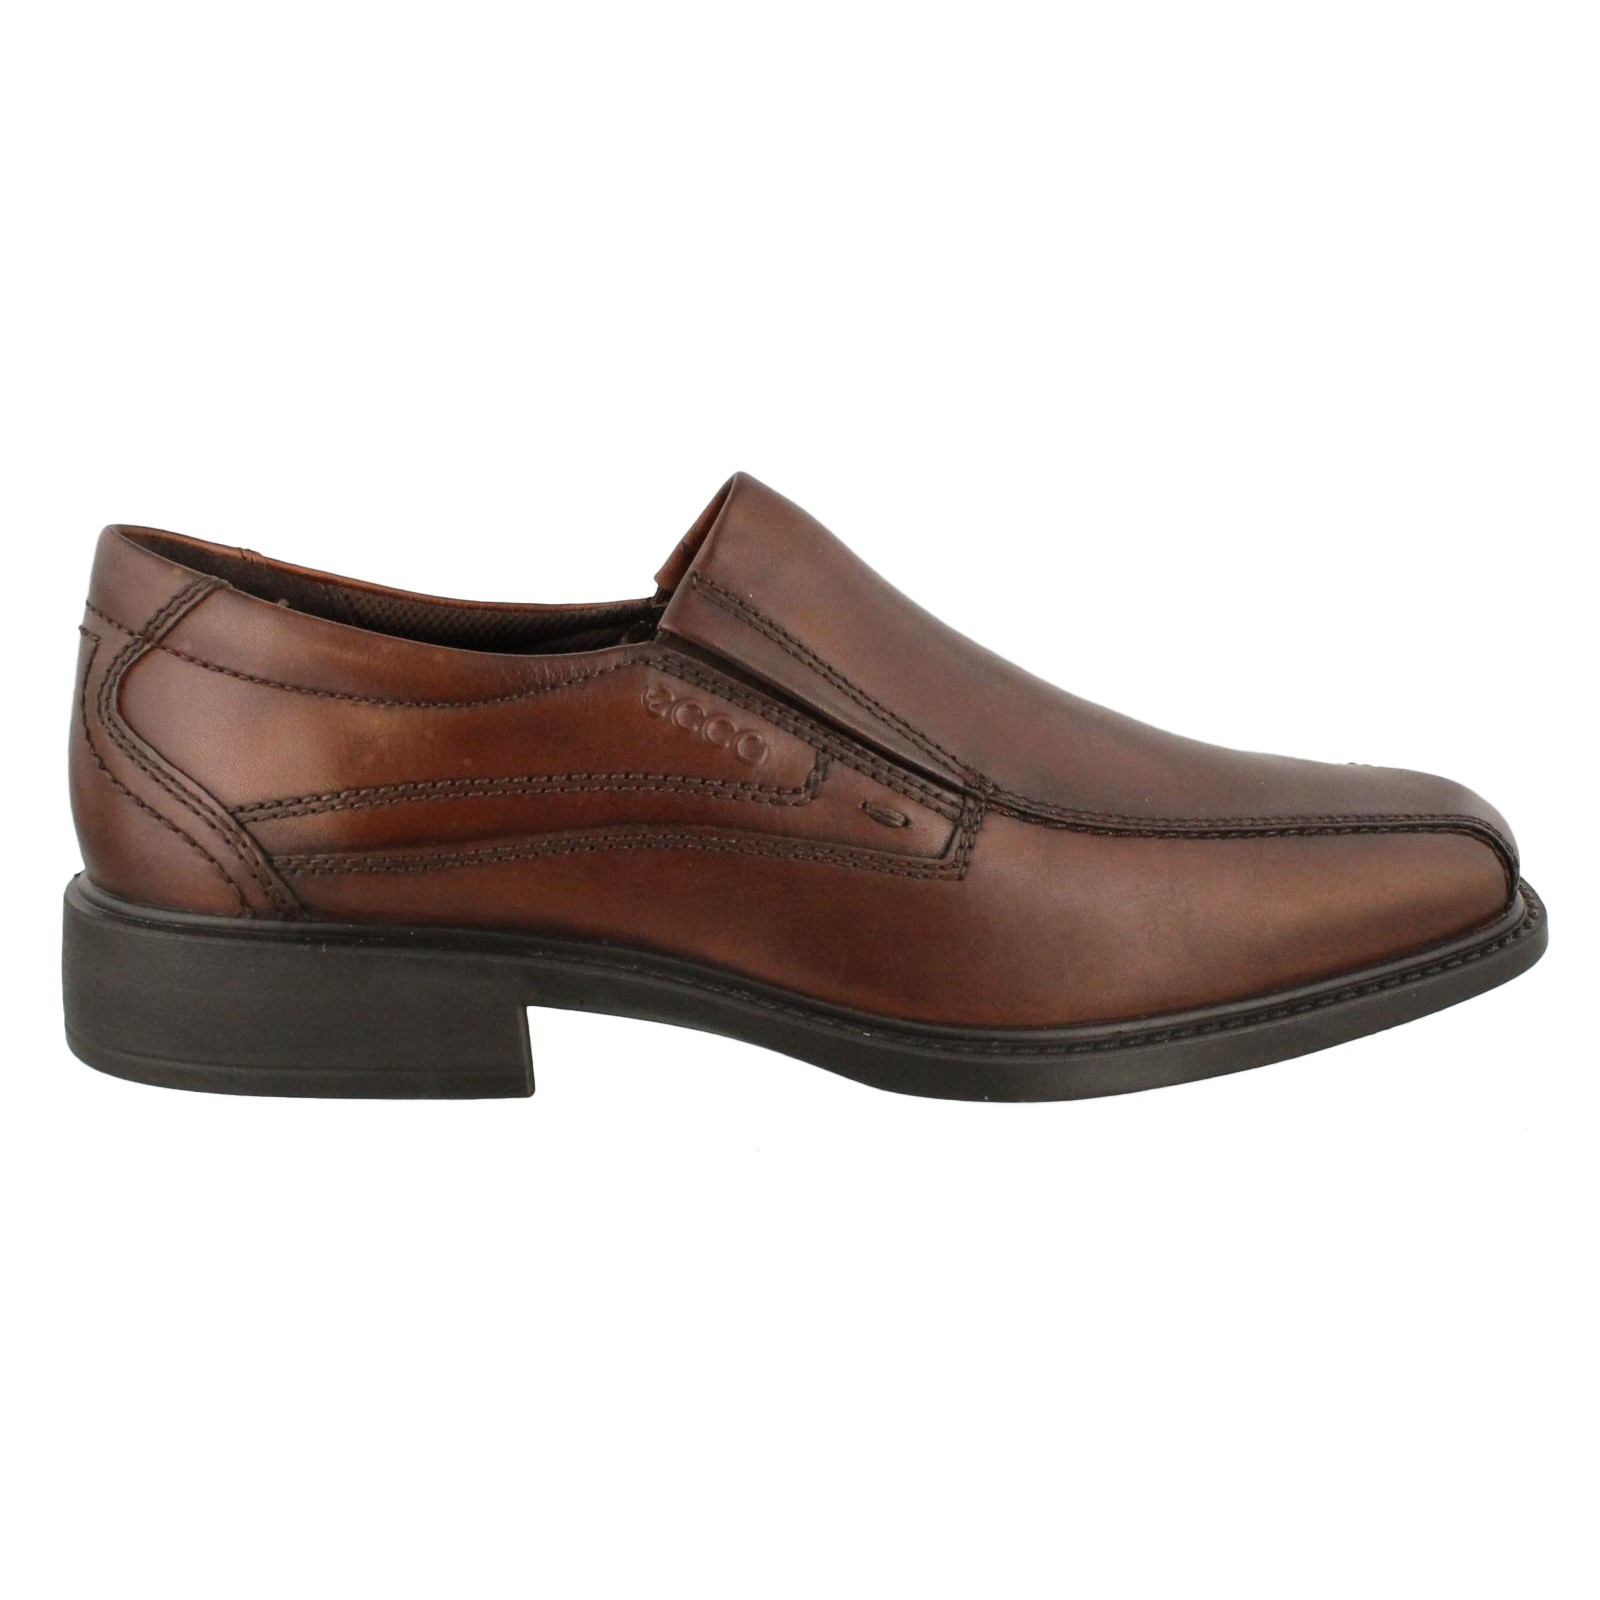 Men's Ecco, New Jersey Slip-On dress Shoe